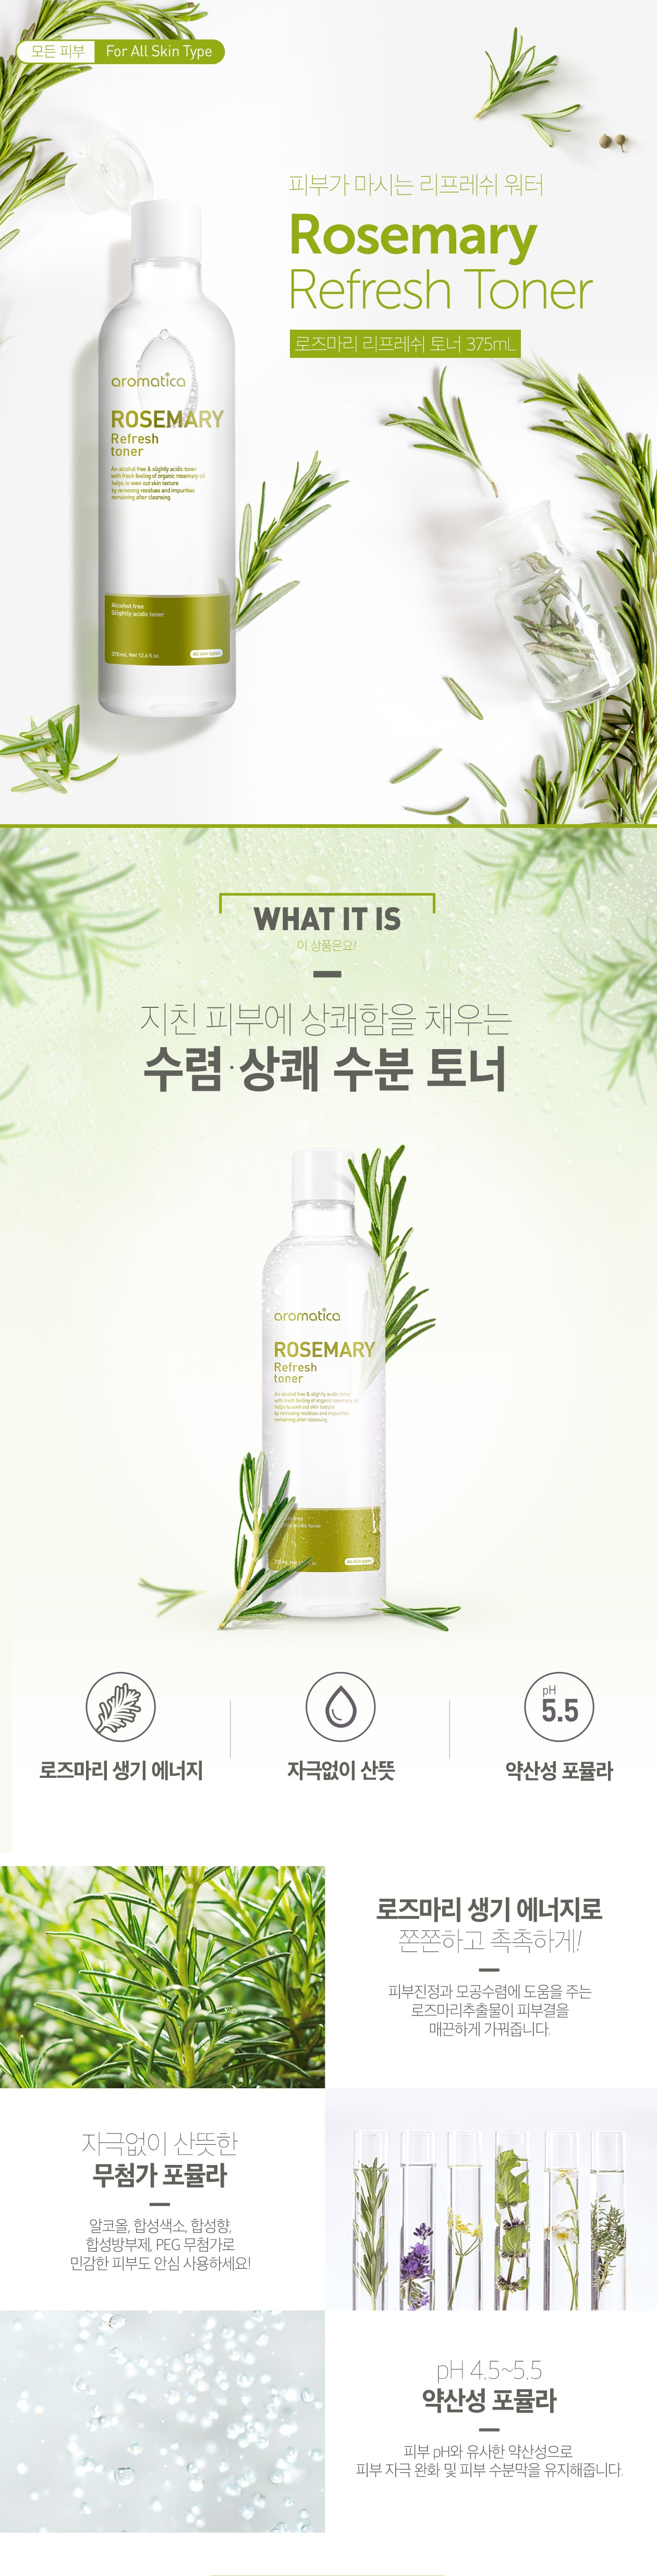 Aromatica Rosemary Refresh Toner new korean cosmetic skincare product online shop malaysia china japan1